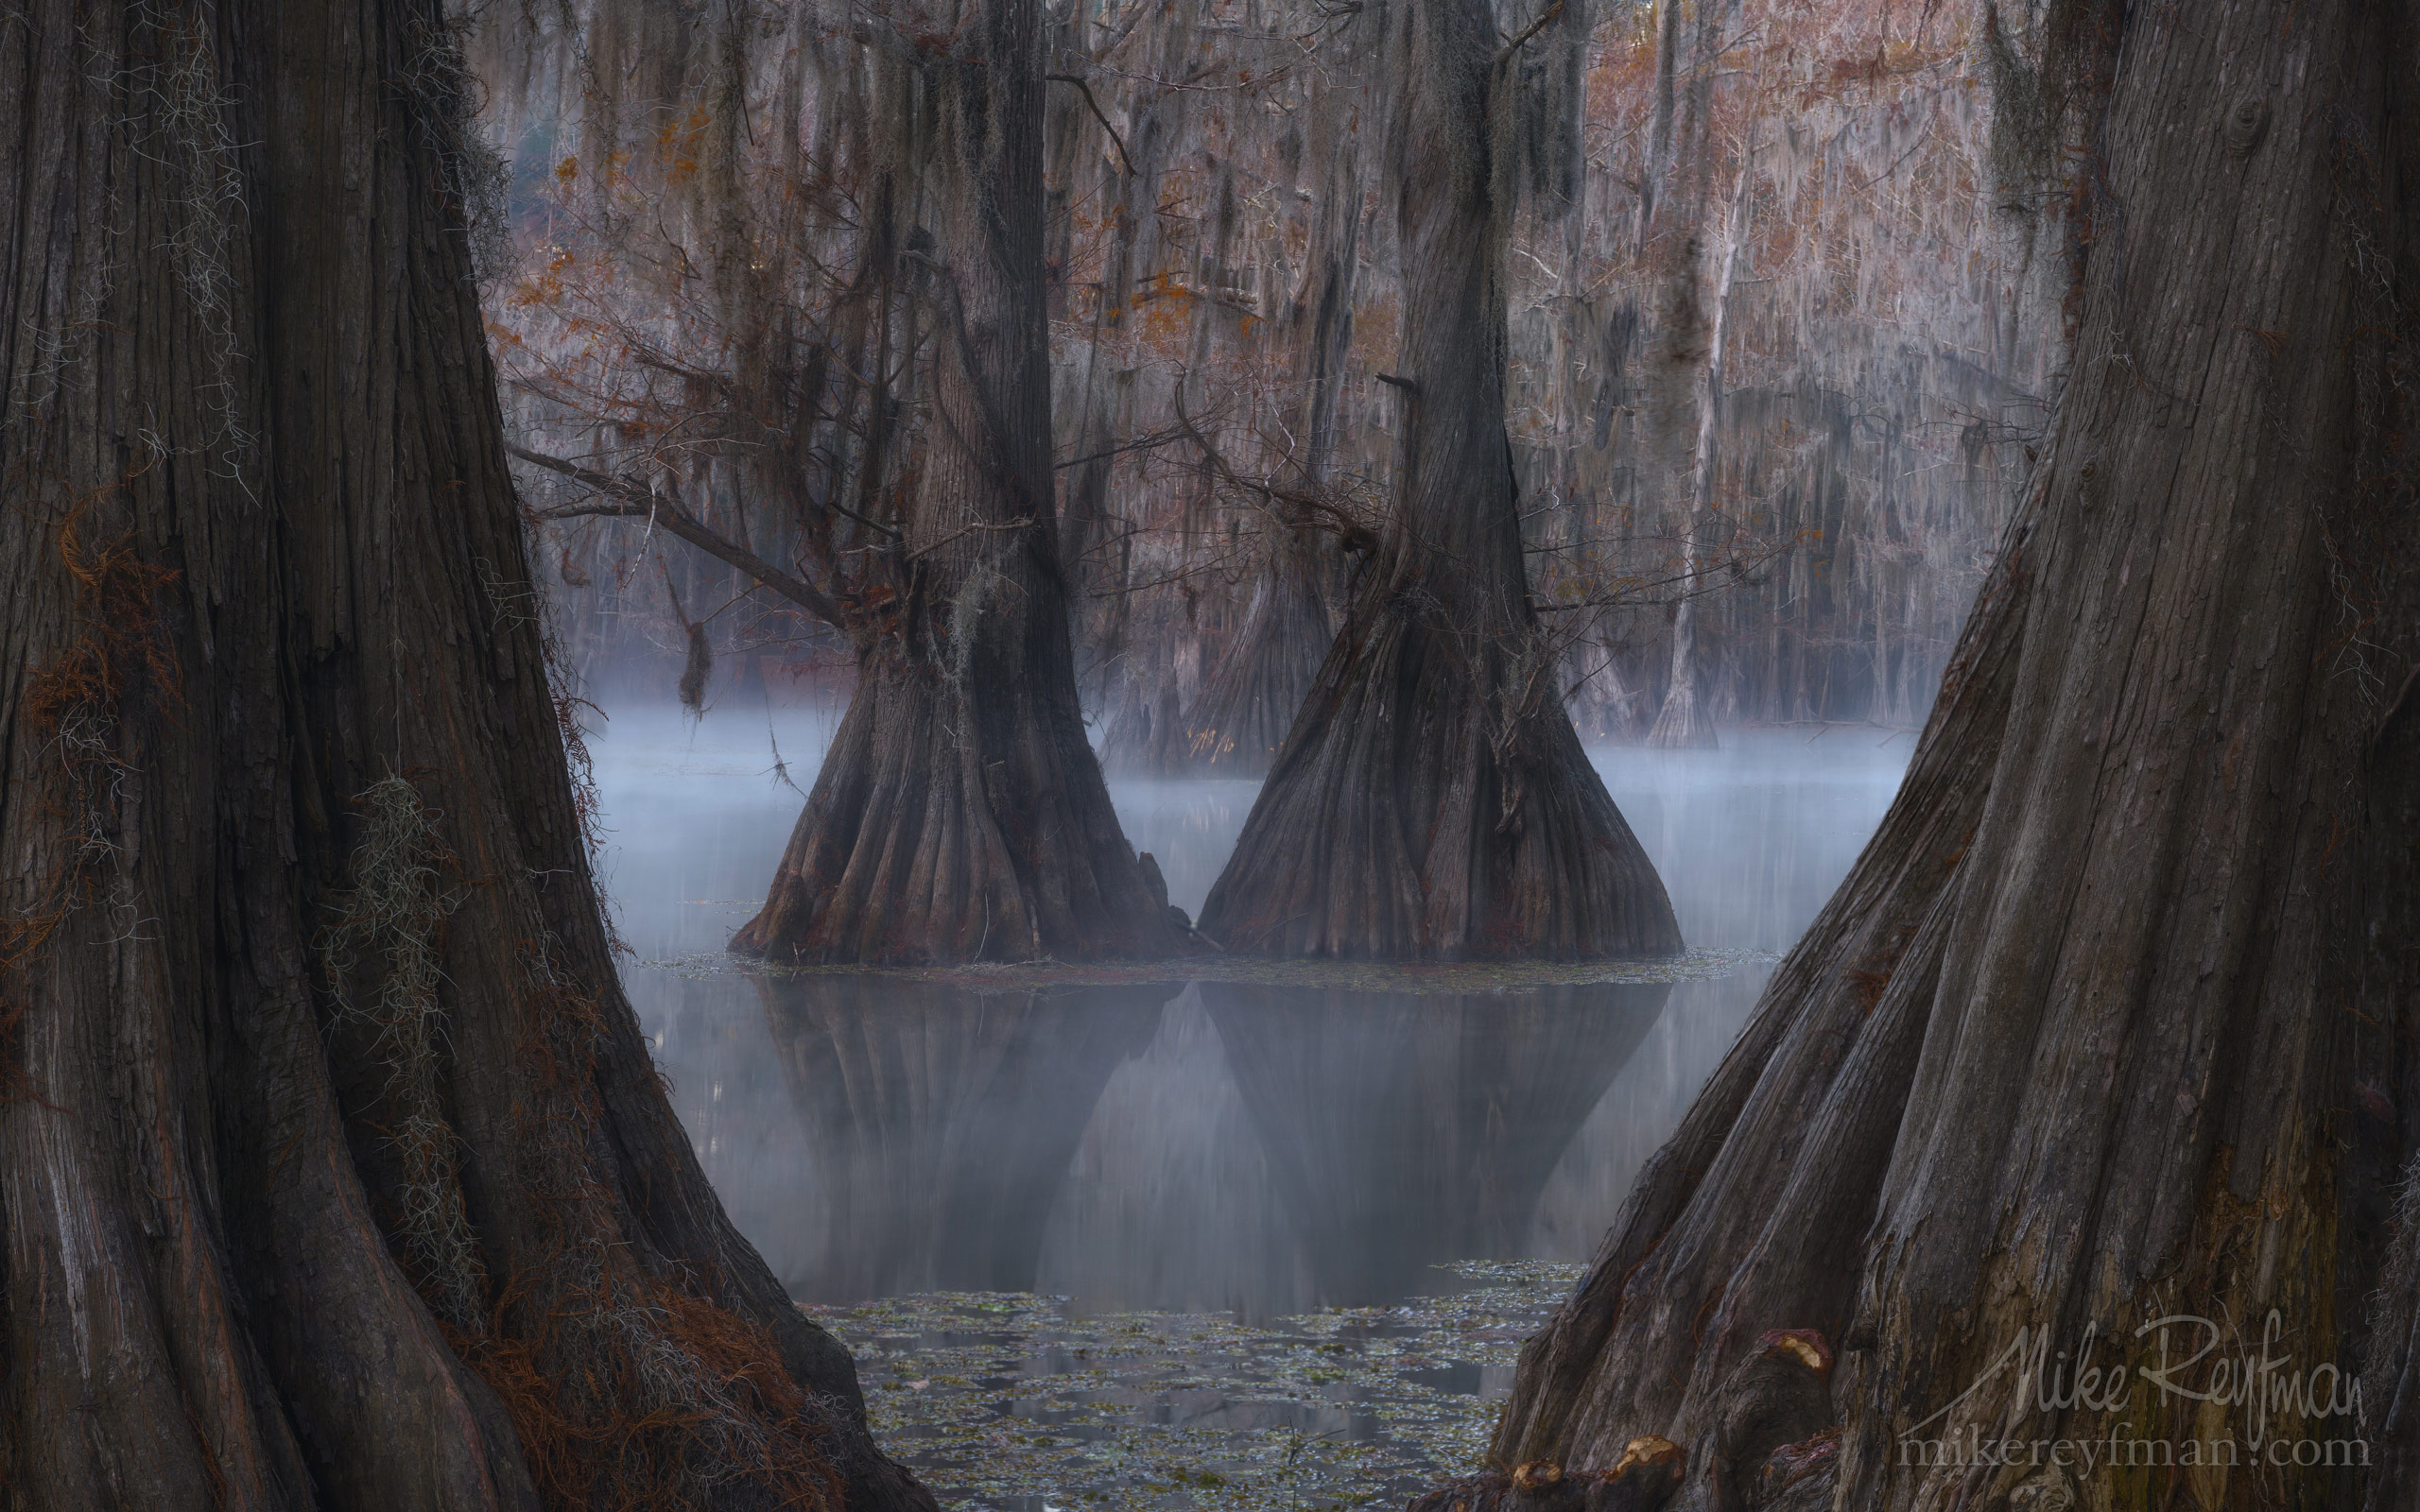 Bald Cypress trees in the swamp. Foggy morning on Caddo Lake, Texas, US 008_LT1_50A3264.jpg - Bold Cypress and Tupelo Trees in the swamps of Atchafalaya River Basin. Caddo, Martin and Fousse Lakes. Texas/Louisiana, USA. - Mike Reyfman Photography